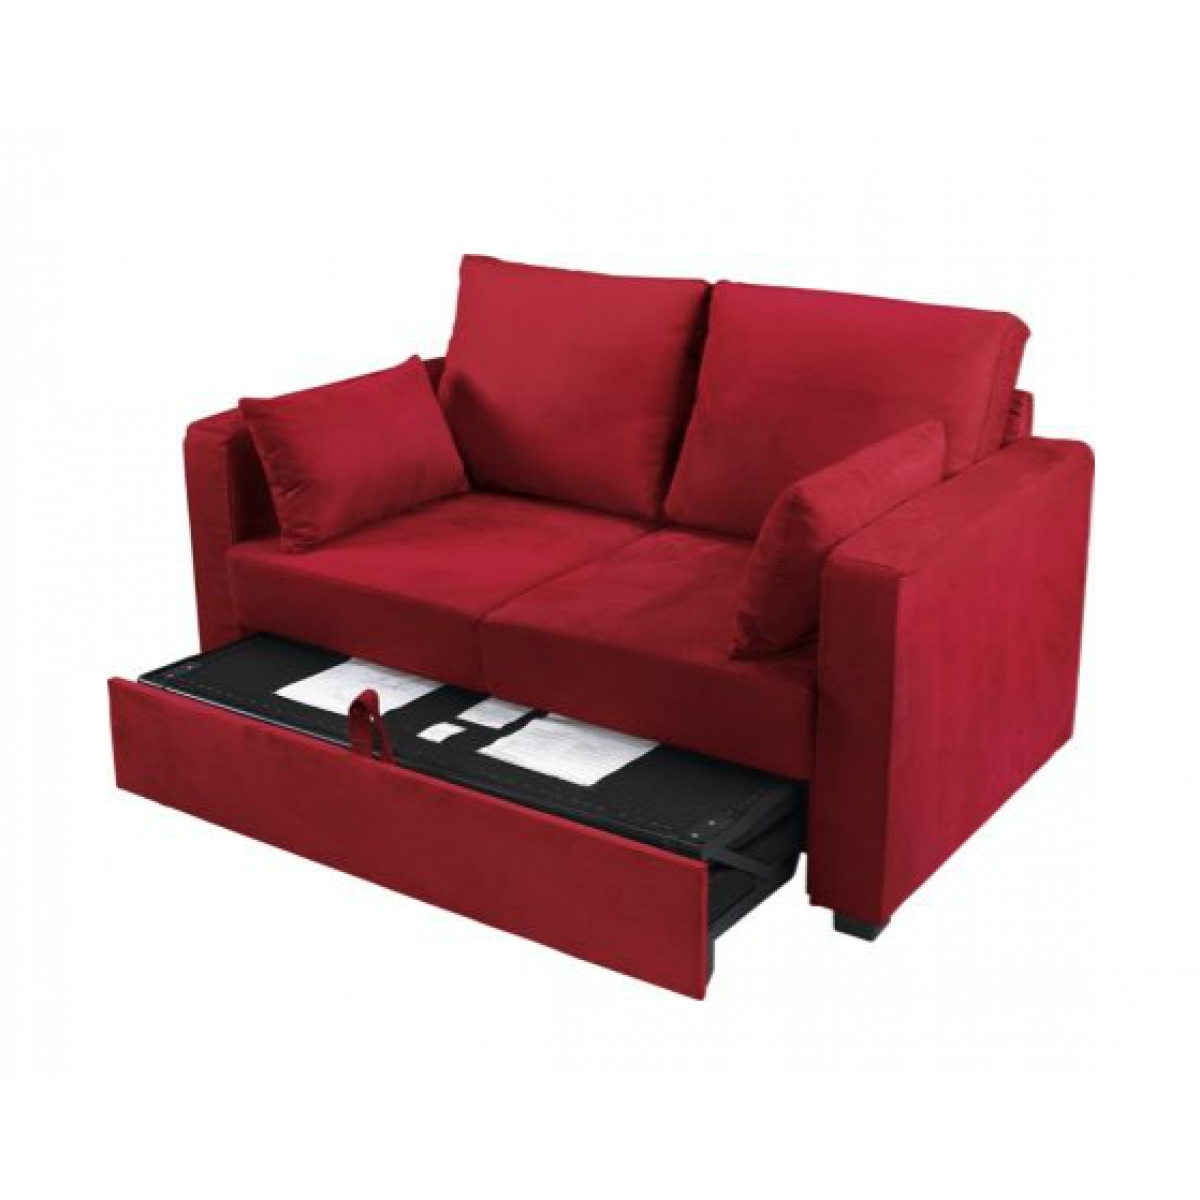 Stunning Apartment Size Sectional Sofa Photos - Liltigertoo regarding Apartment Size Sofas (Image 9 of 10)